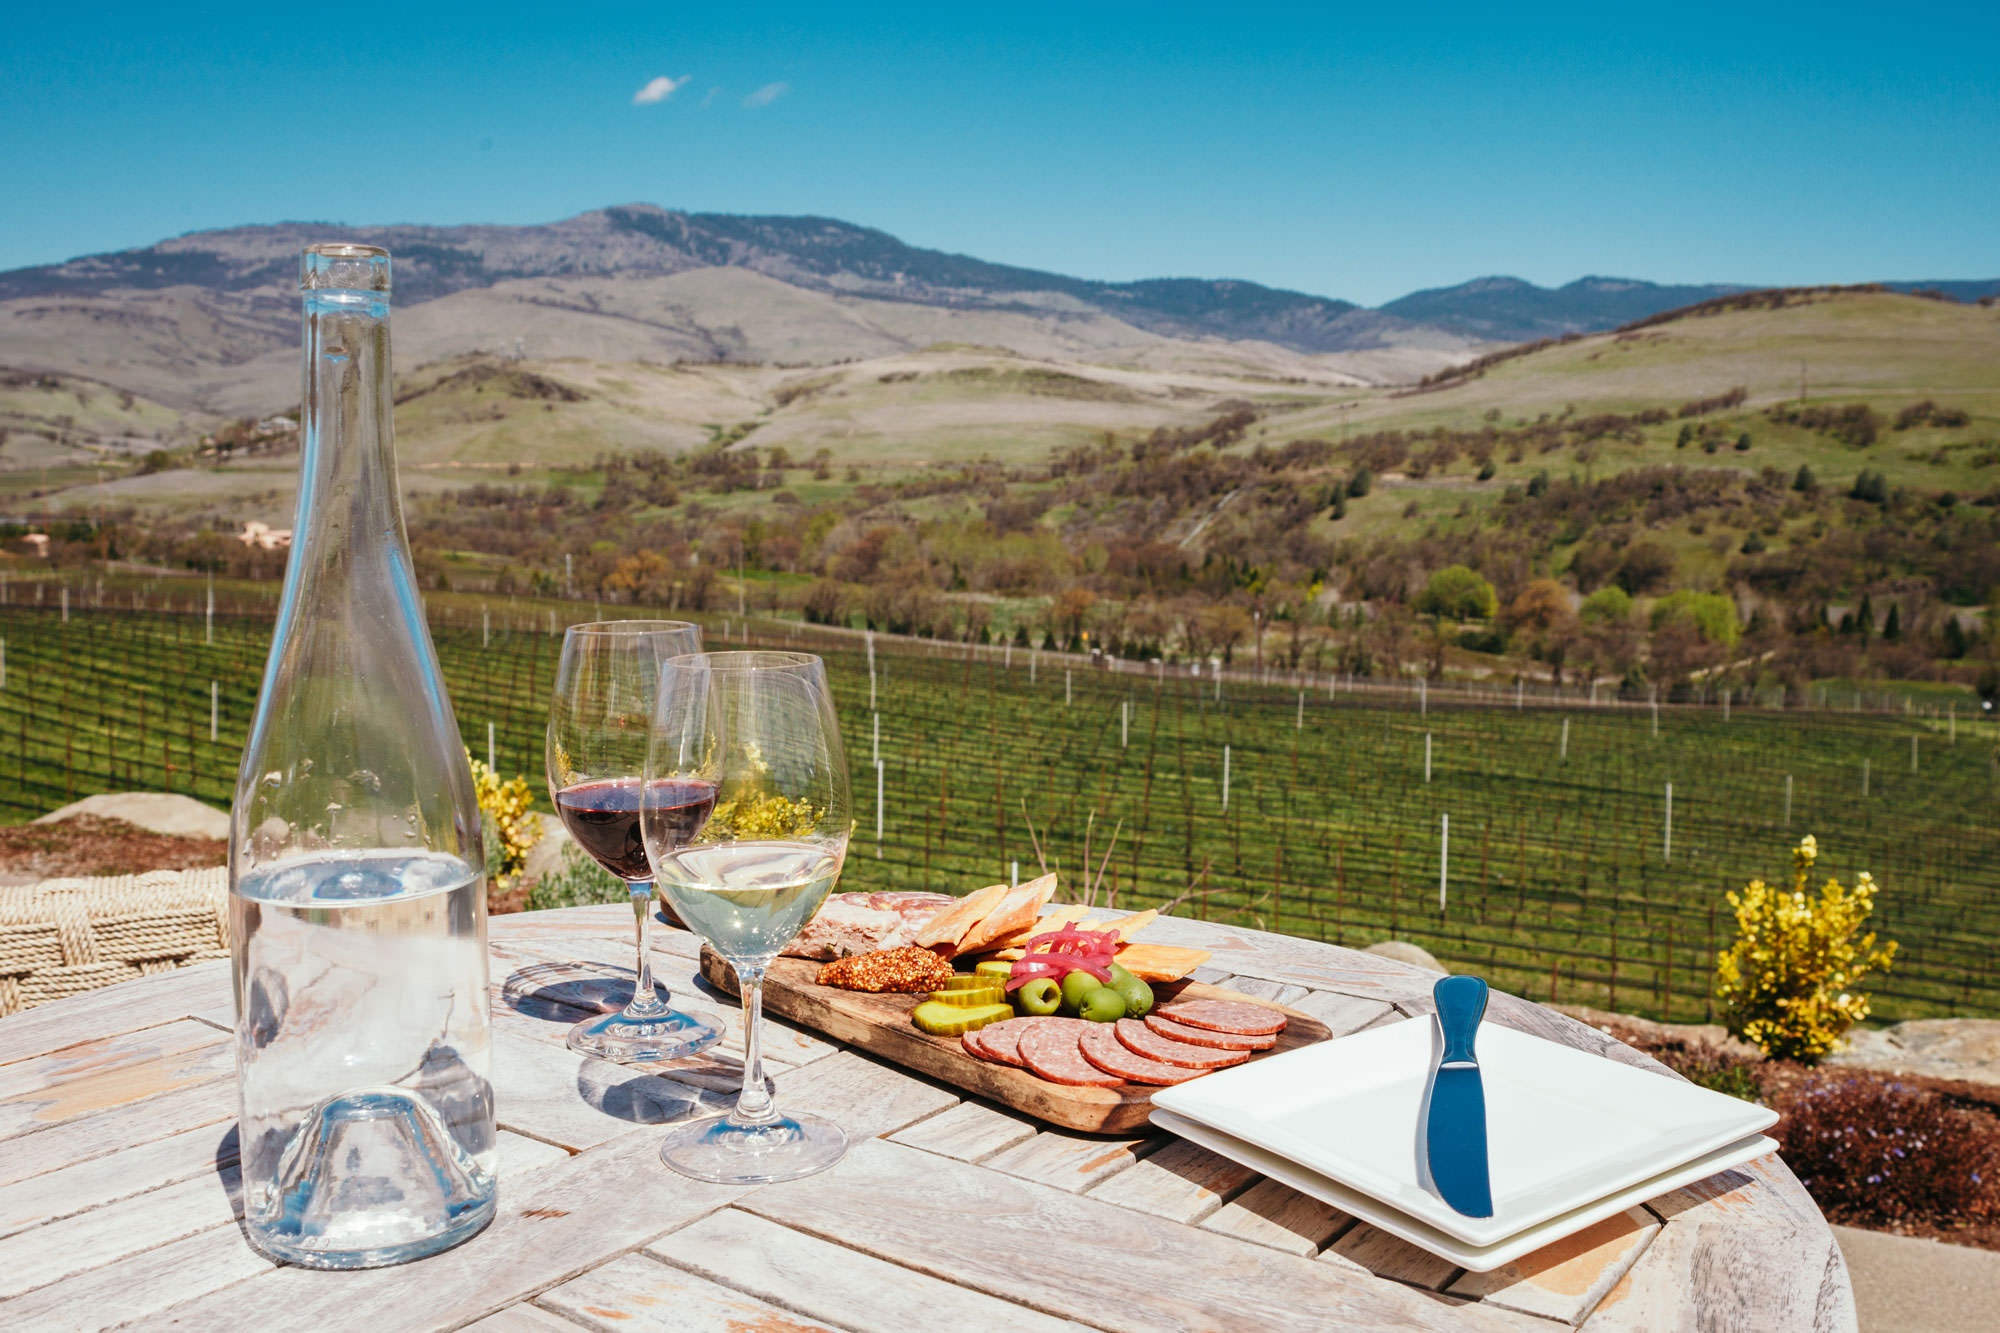 Wine and a charcuterie board sit in front of a sprawling vineyard.